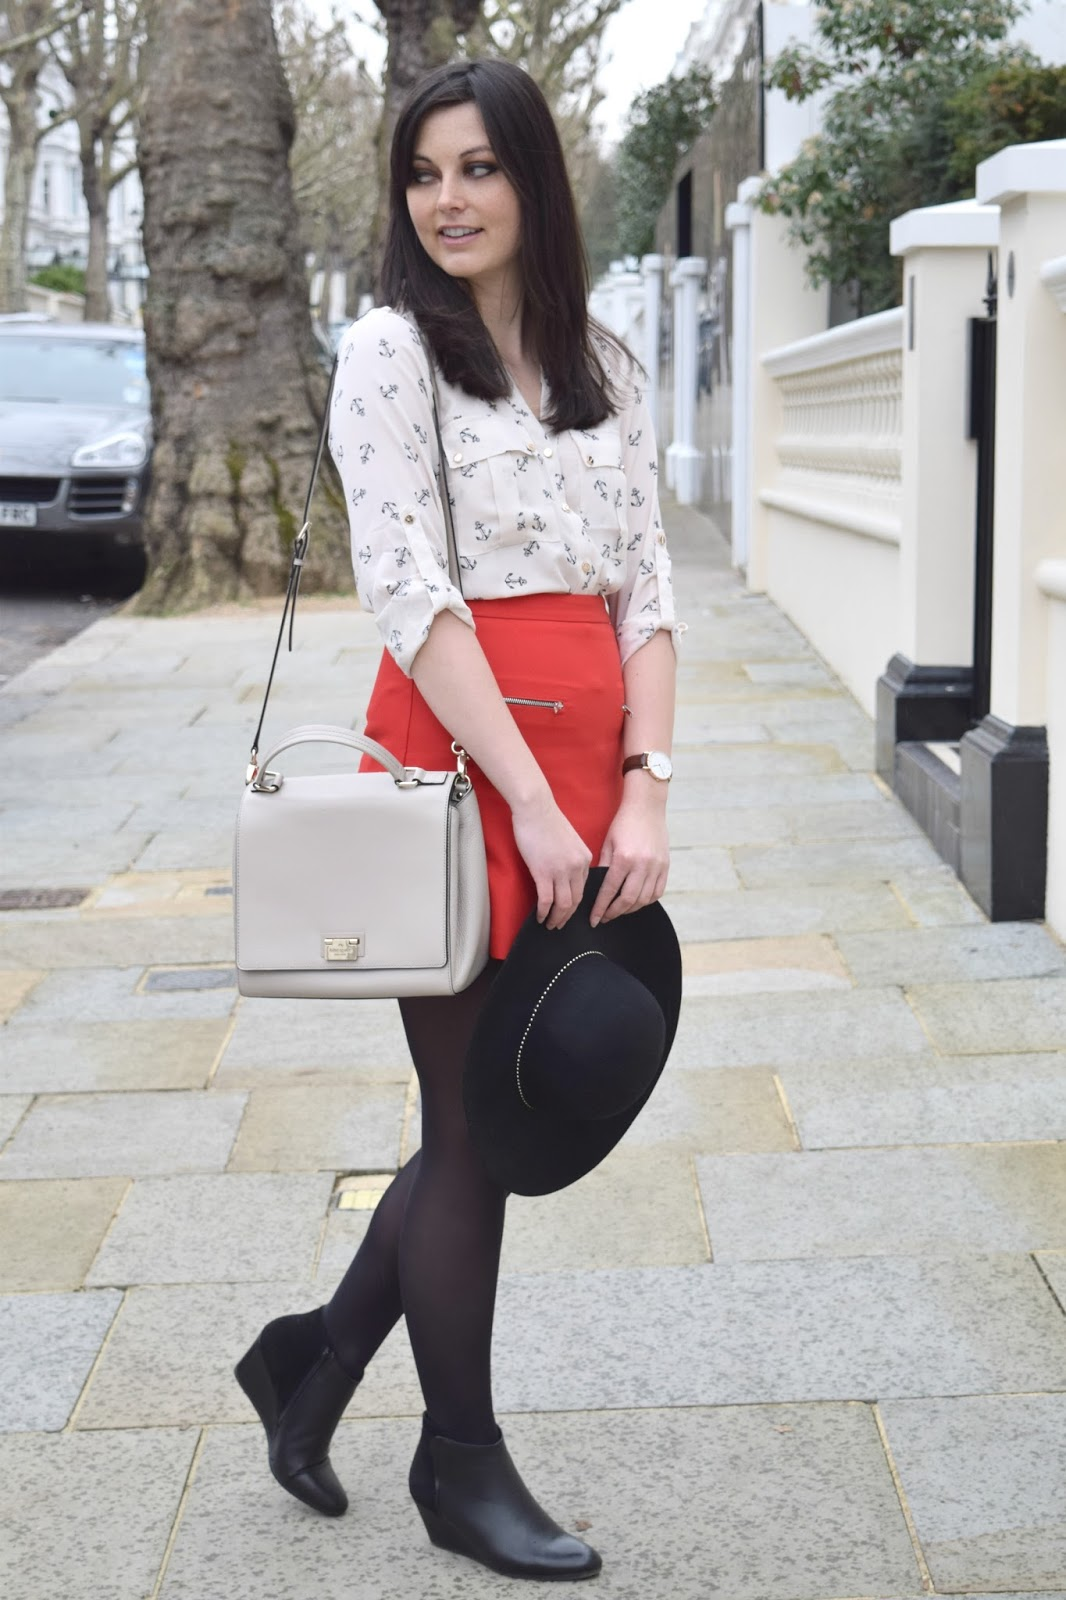 Fashion blogger in kensington london